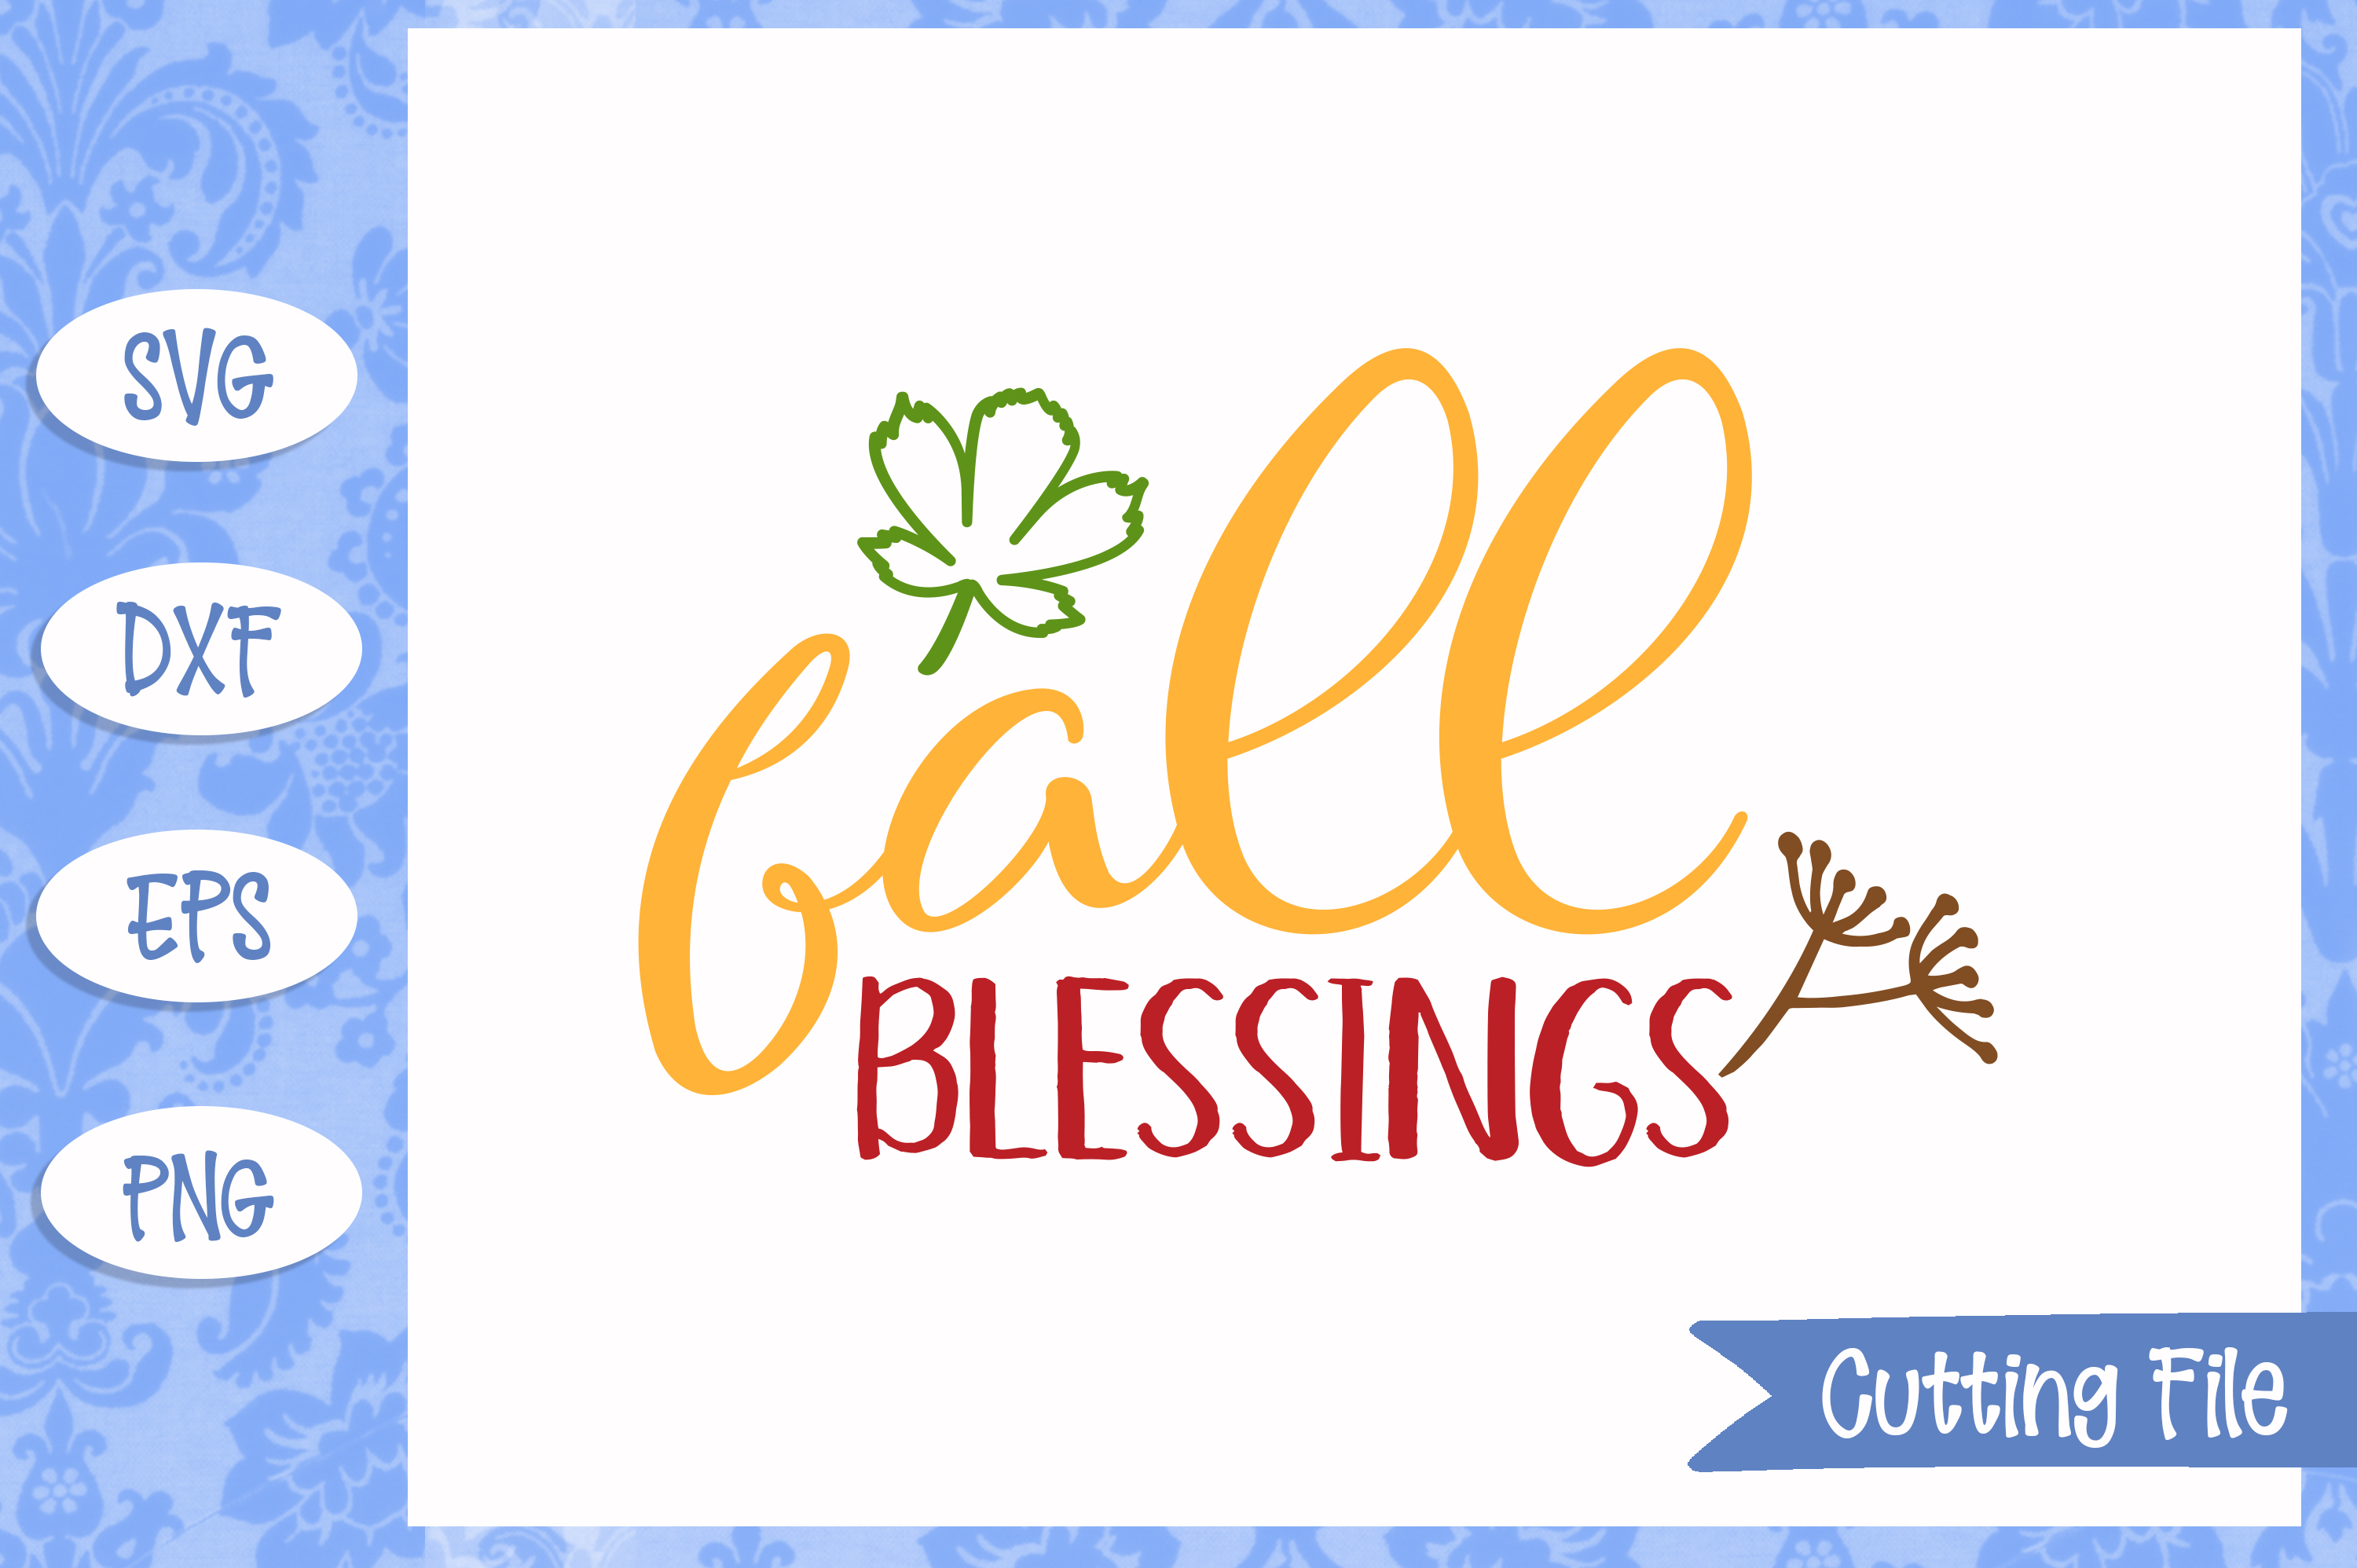 Fall blessings SVG File example image 1